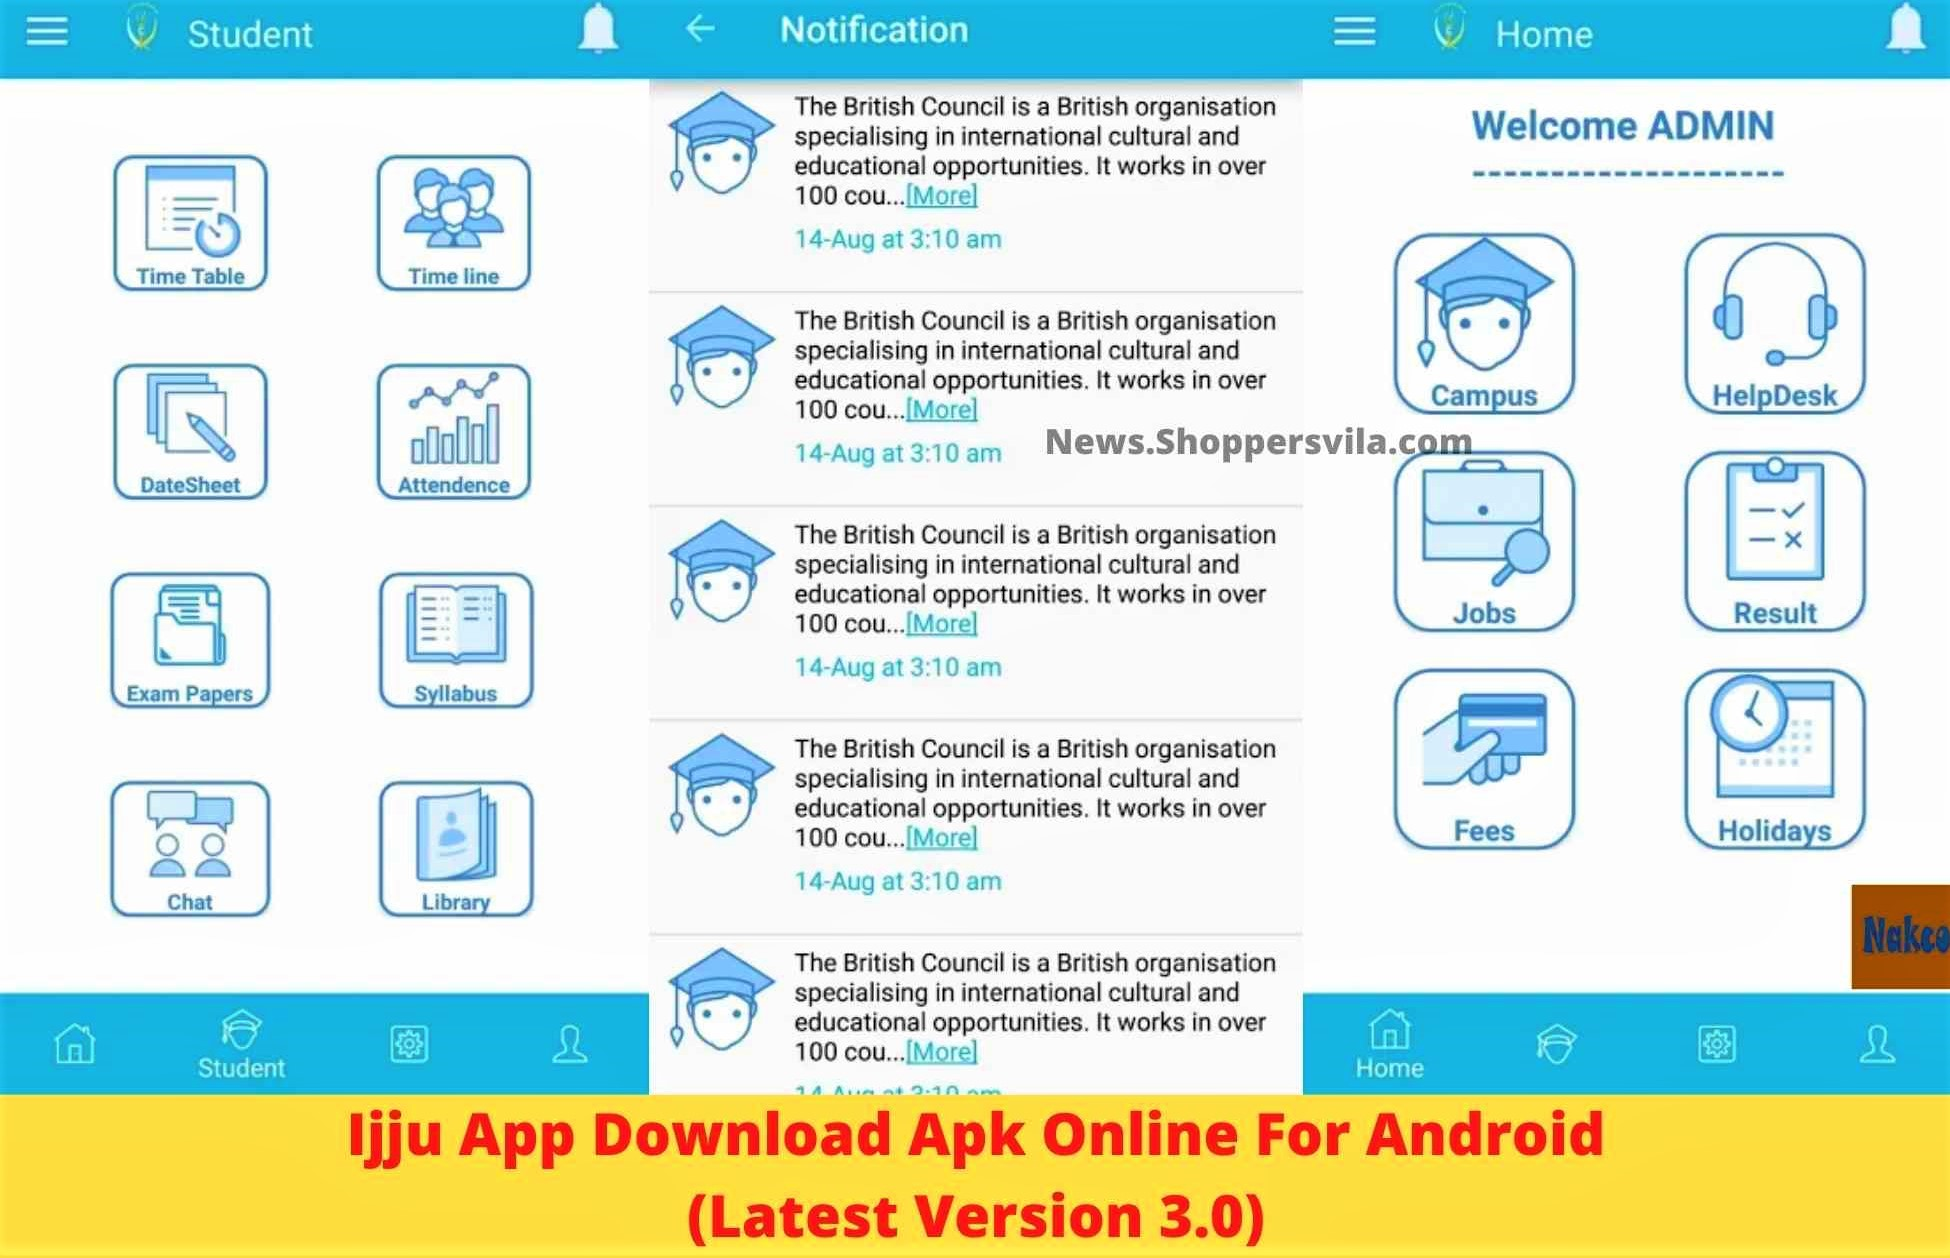 Ijju Movie App Download Apk Online For Android (Latest Version 3.0)